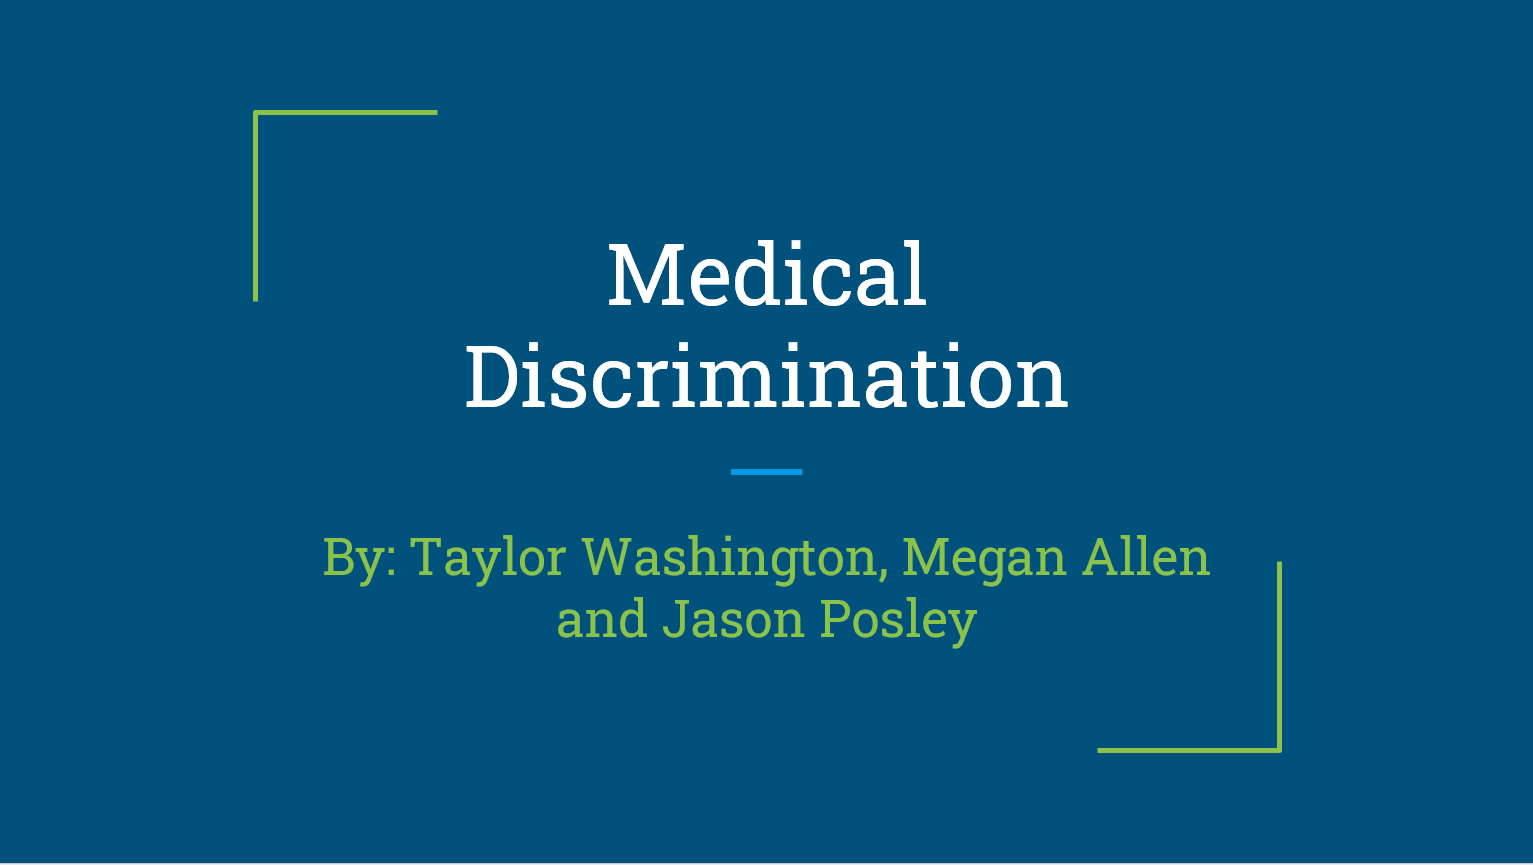 Discrimination in Health Care title card of slidedeck